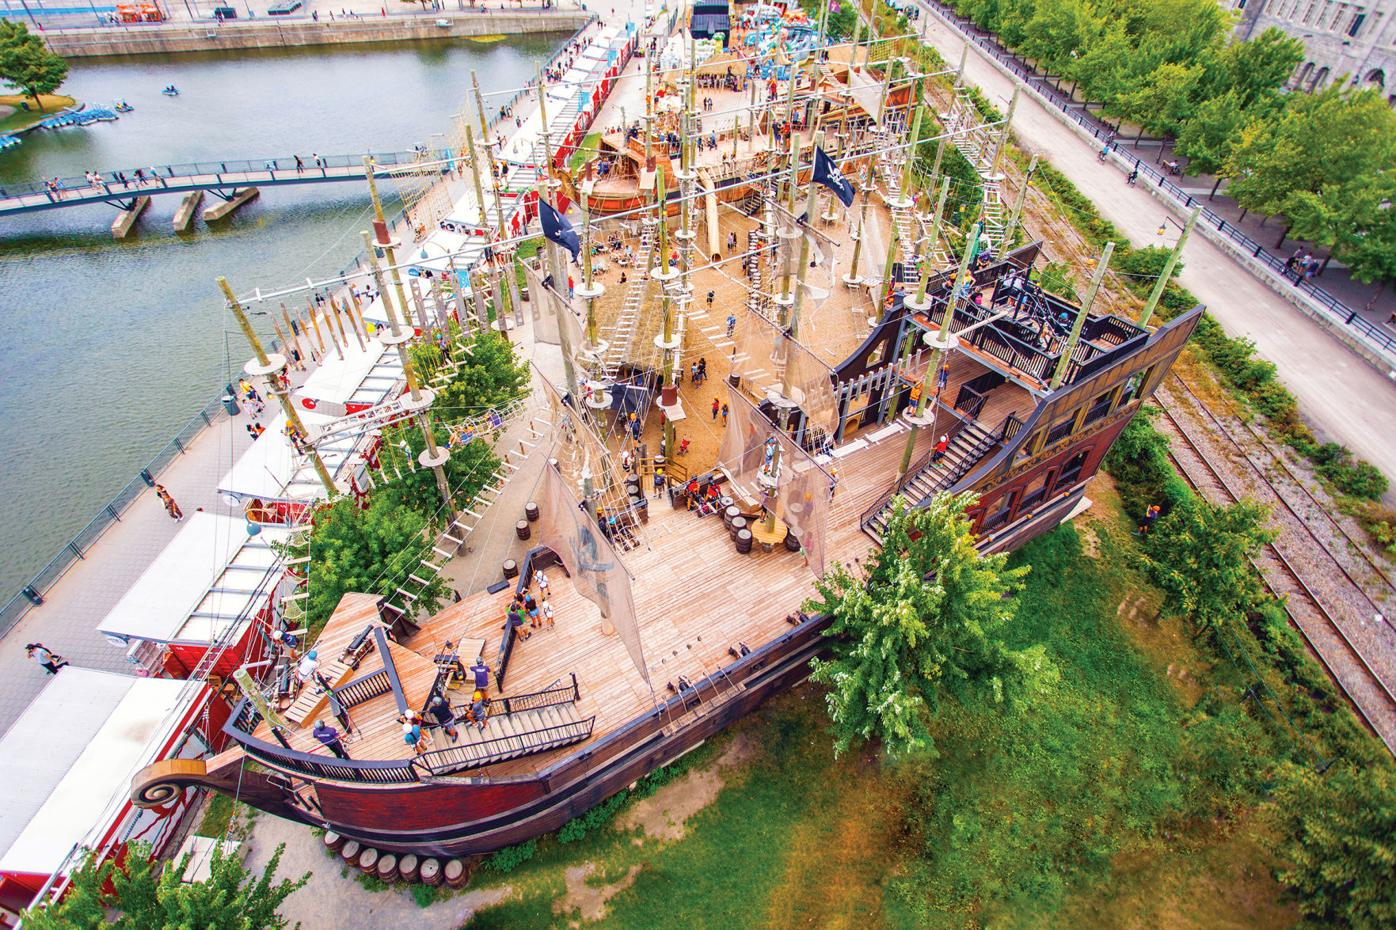 Aerial adventures are a big hit in the Old Port